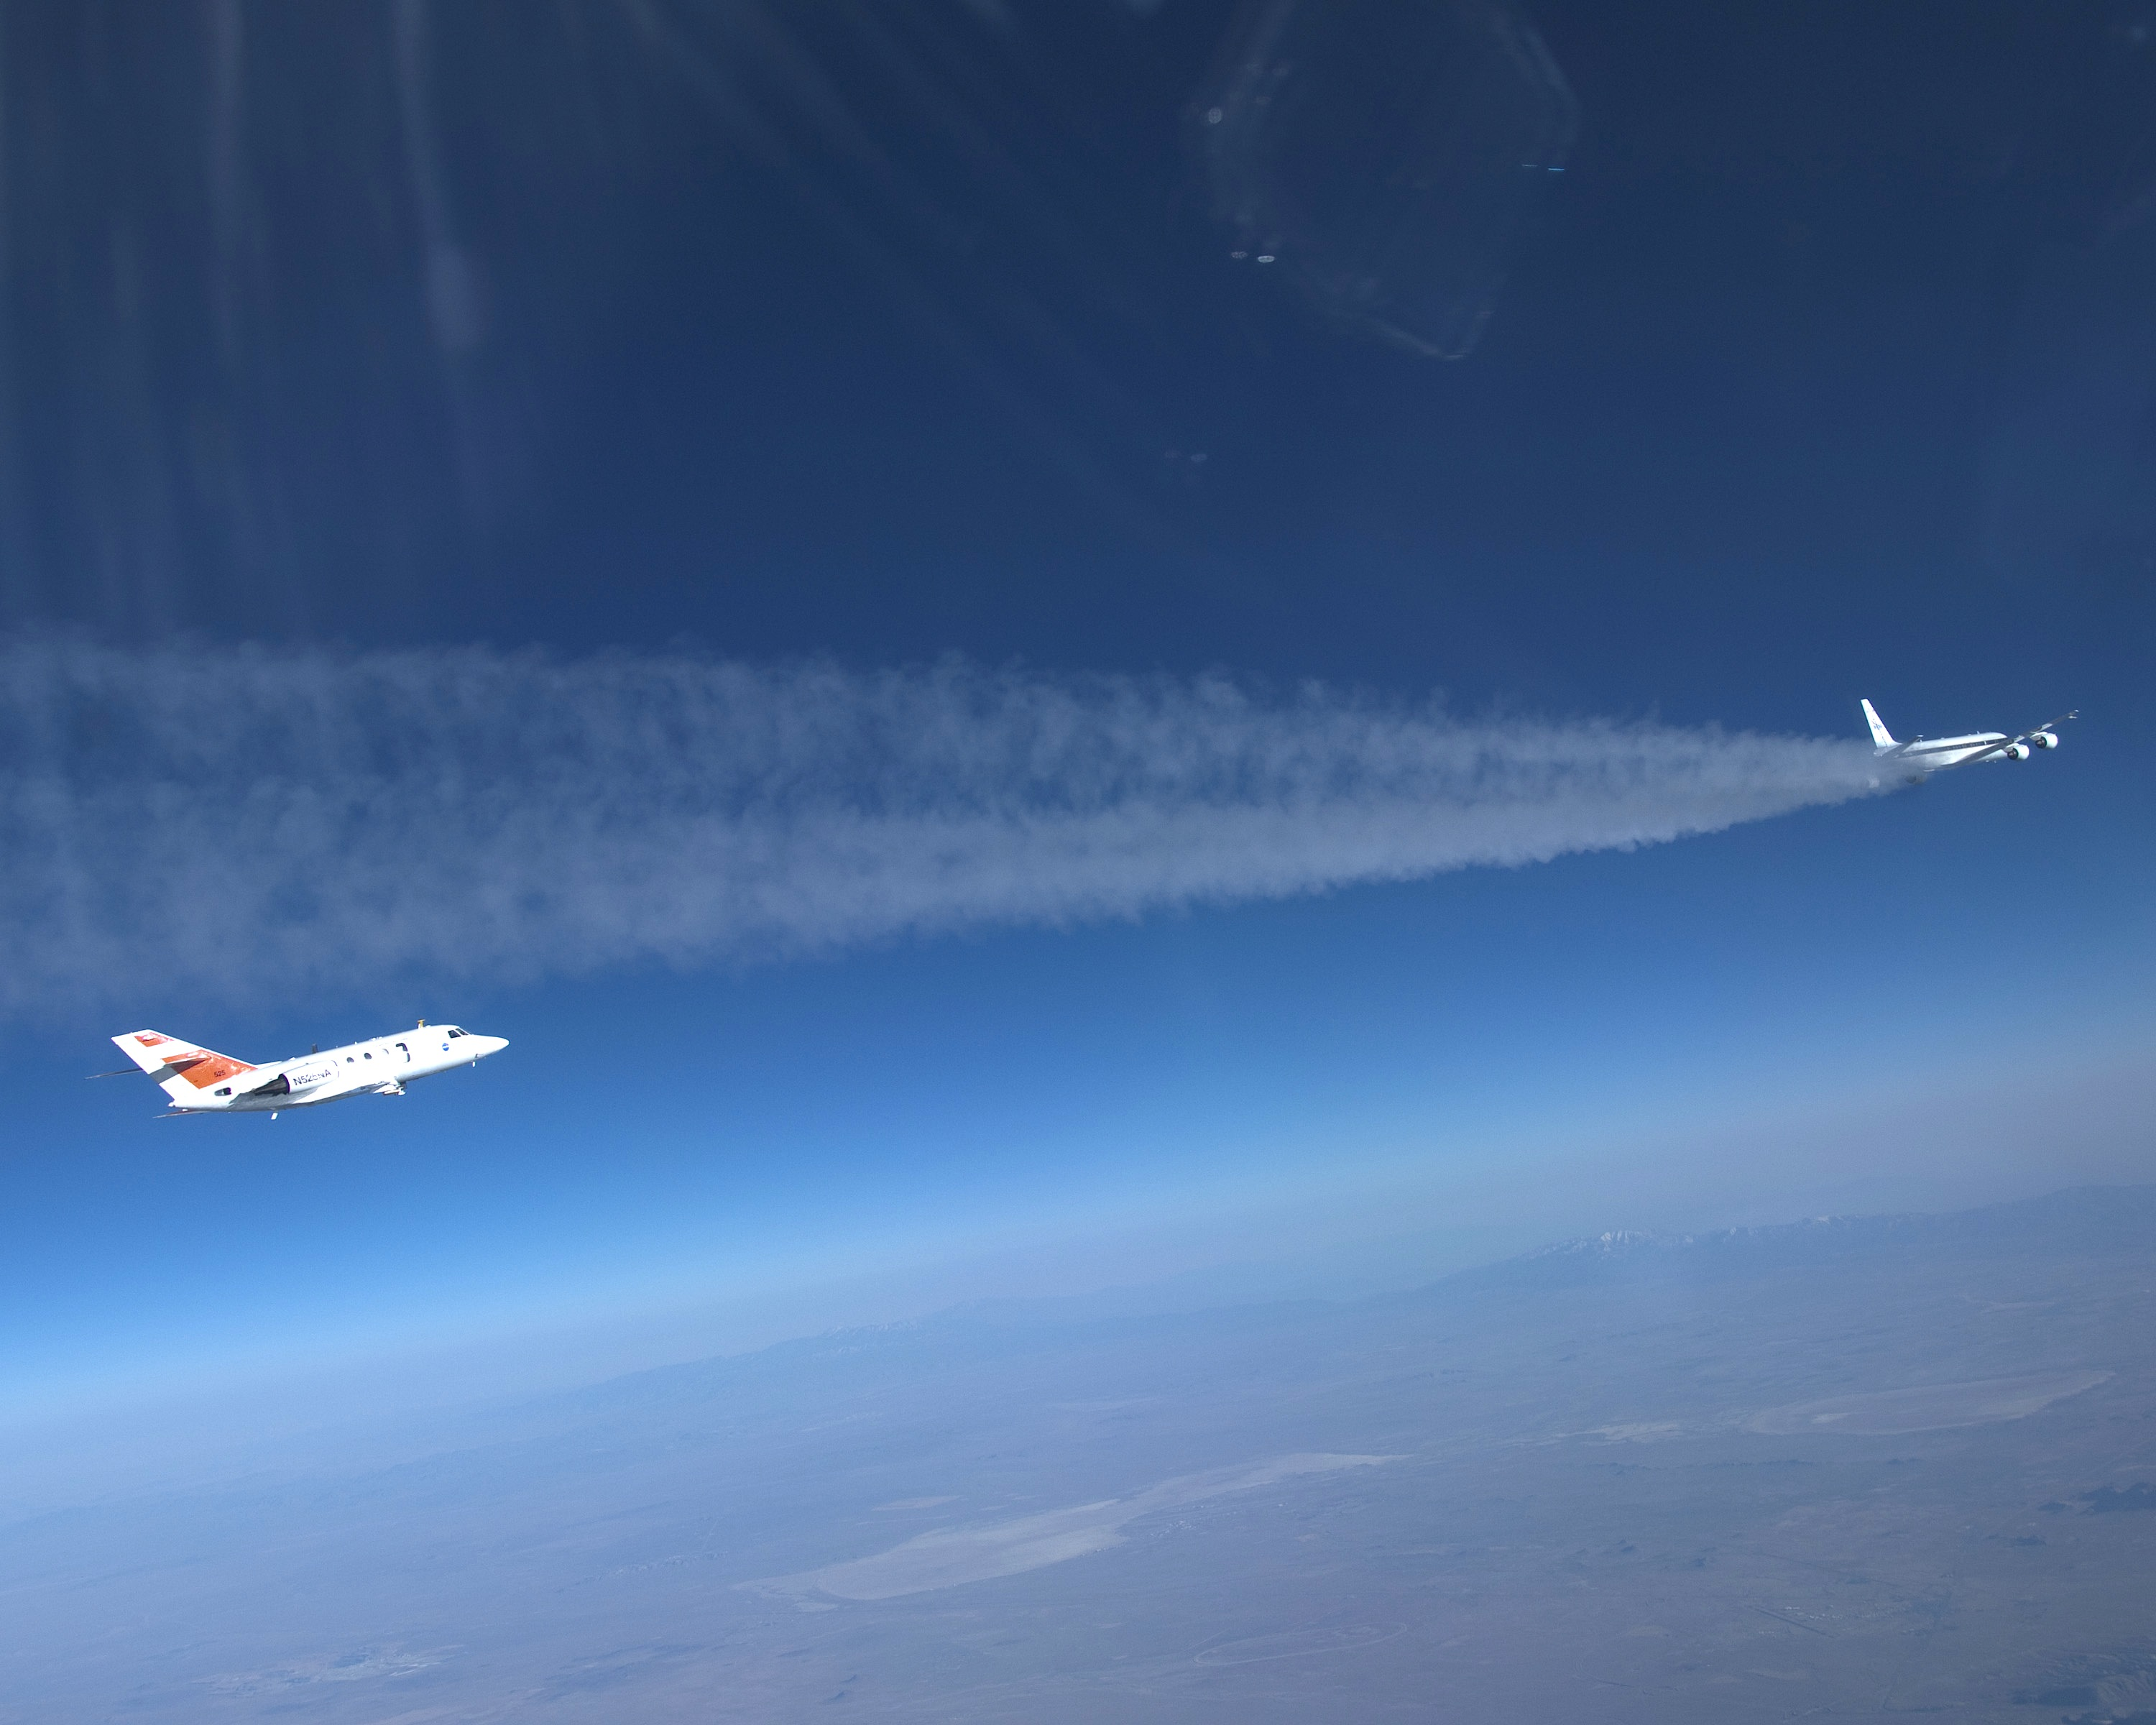 NASA to study the effects on emissions and contrail